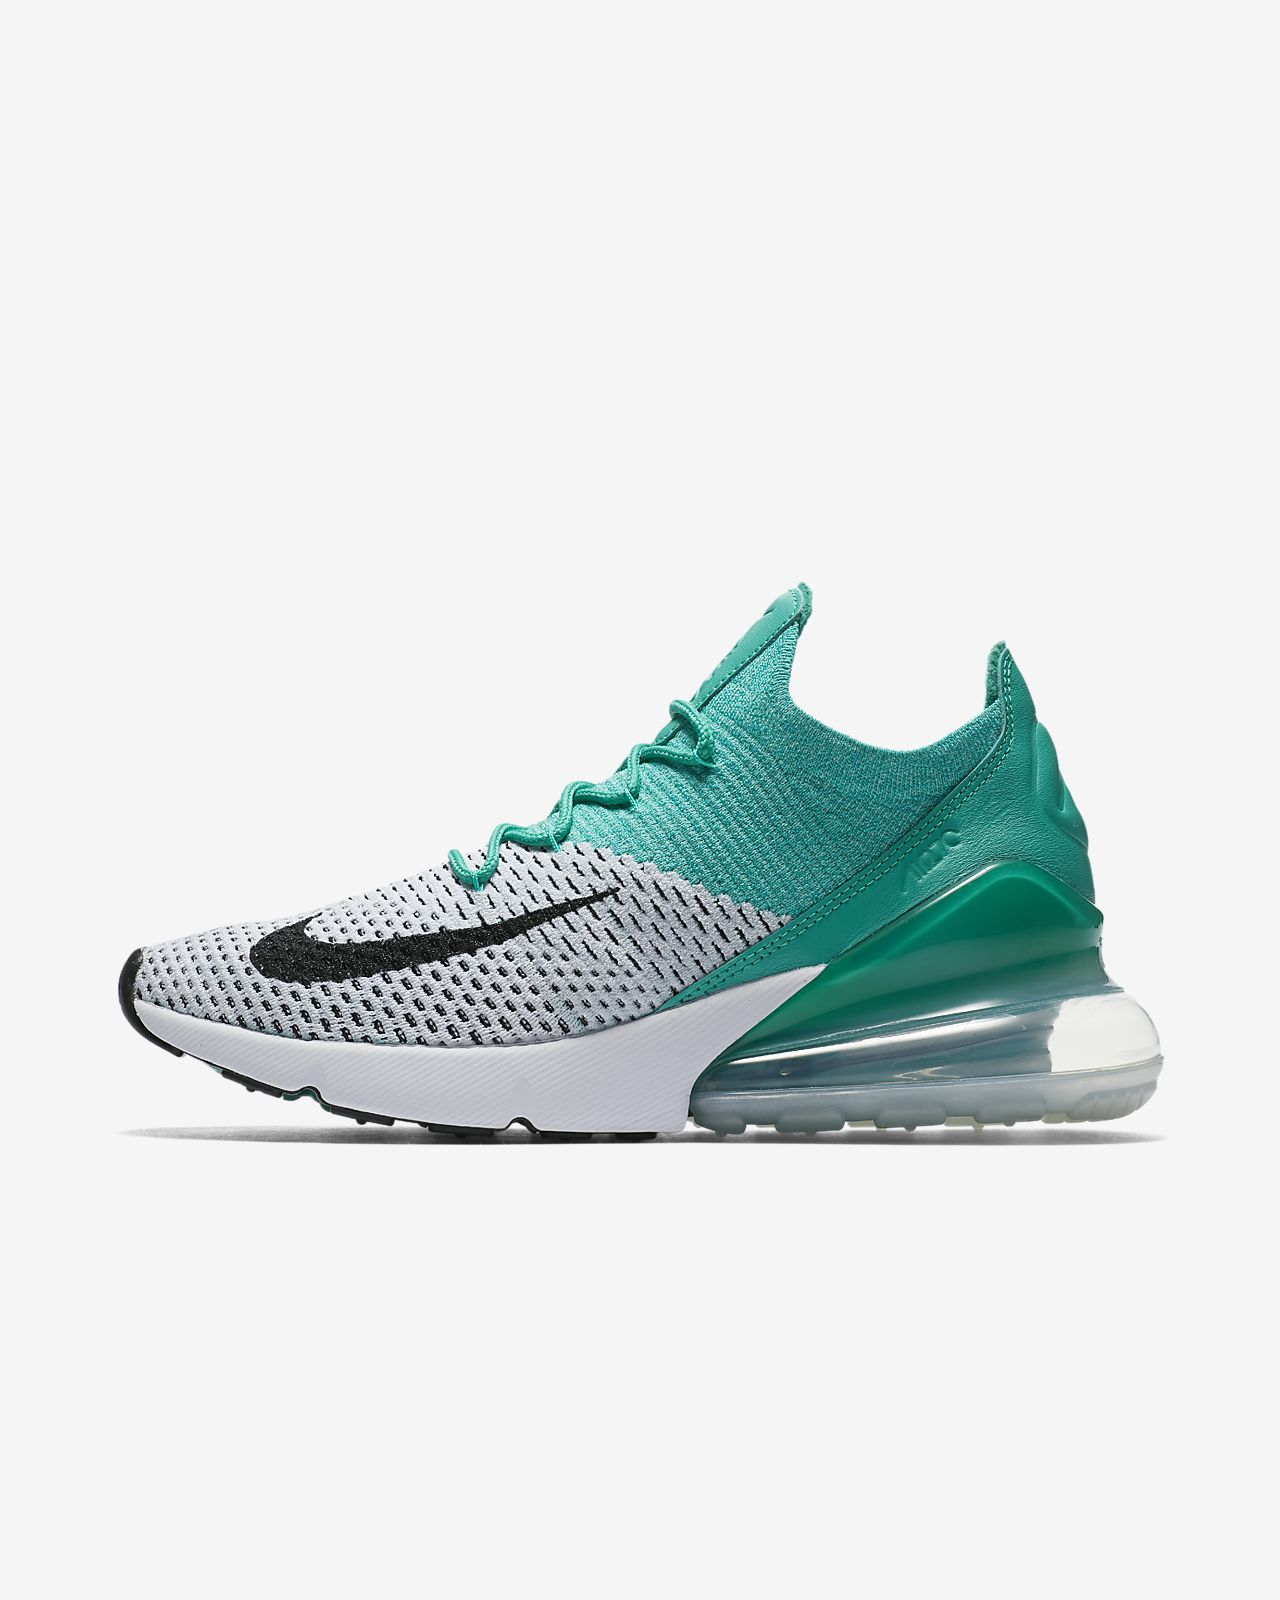 Chaussure Nike Air Max 270 Flyknit pour Femme